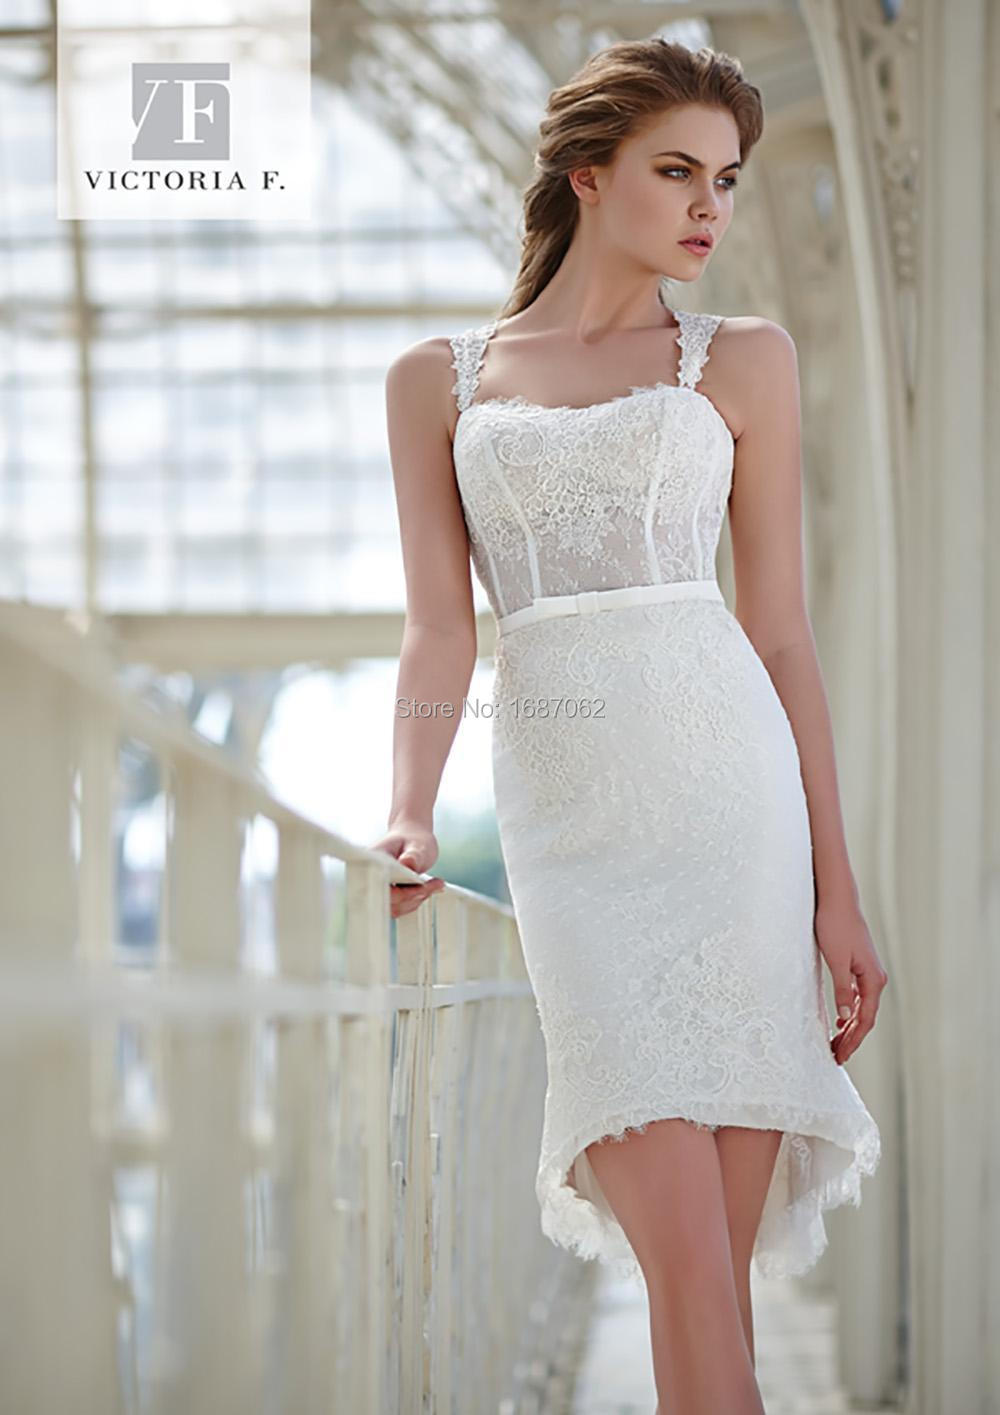 2015 Lace Sheath Beach Wedding Dresses Spaghetti Strap Knee Length ...